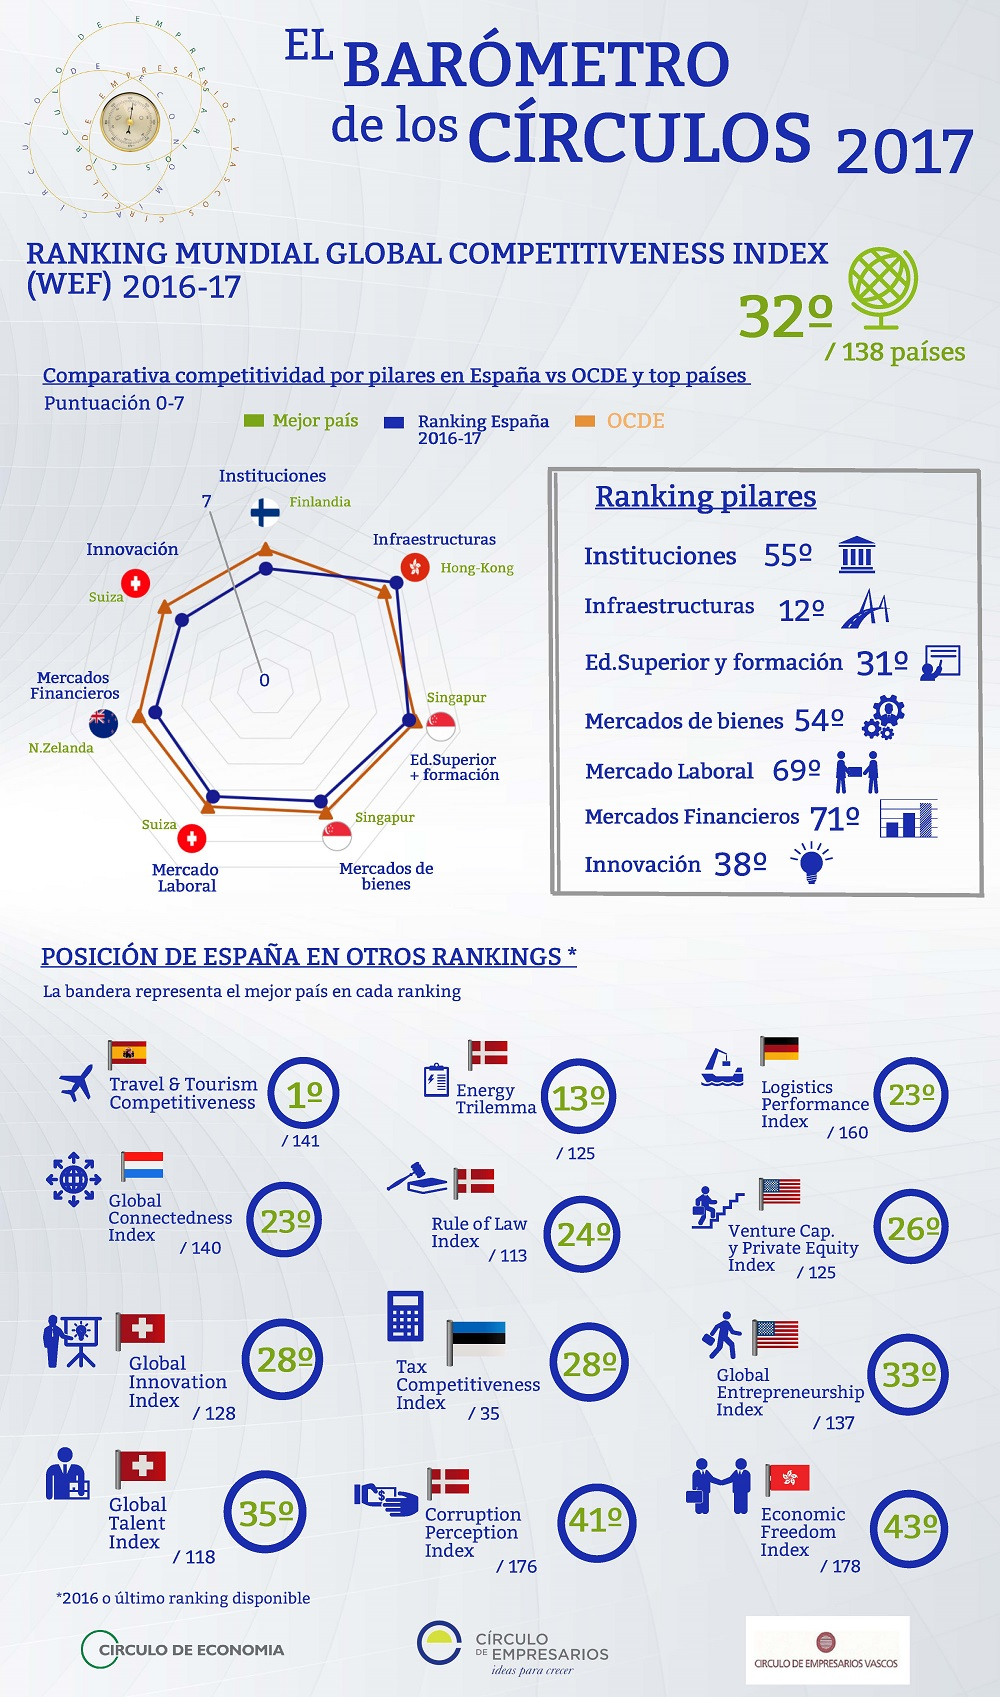 Global-Competitiveness-Index-y-otros-rankings-Barometro-de-los-Circulos-Circulo-de-Empresarios-febrer-2017-1000